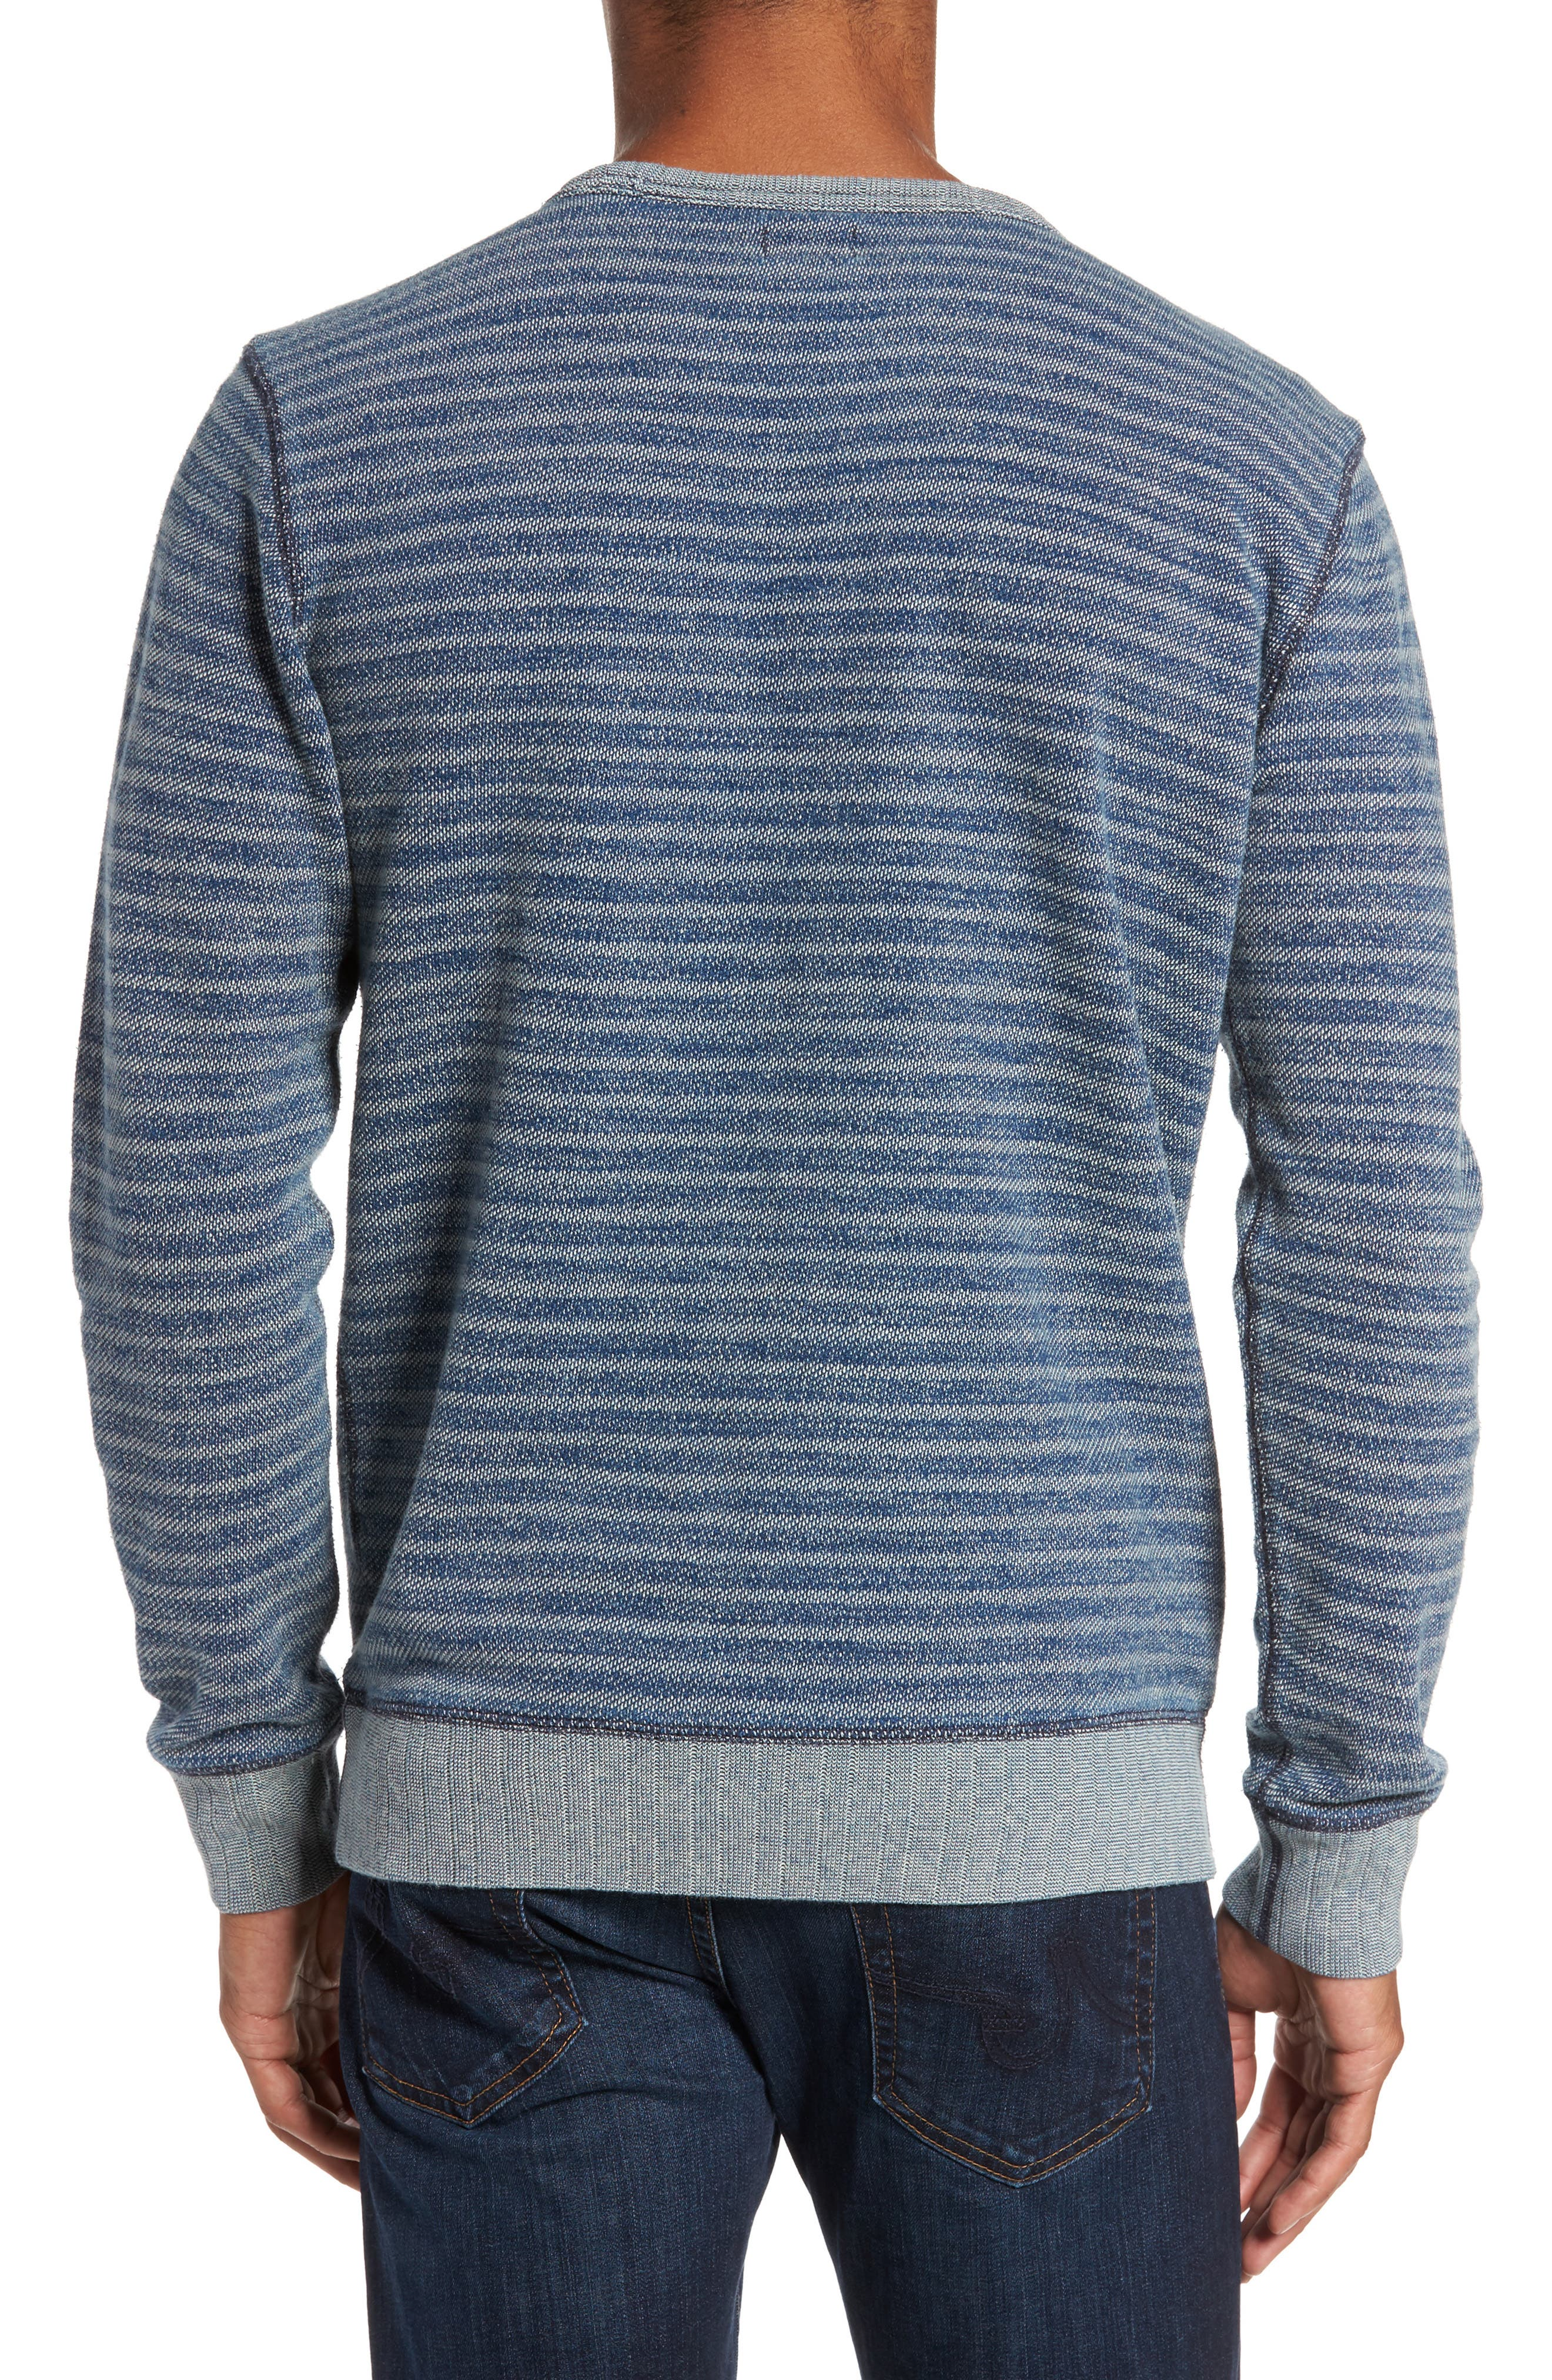 Stripe Crewneck Sweatshirt,                             Alternate thumbnail 2, color,                             402